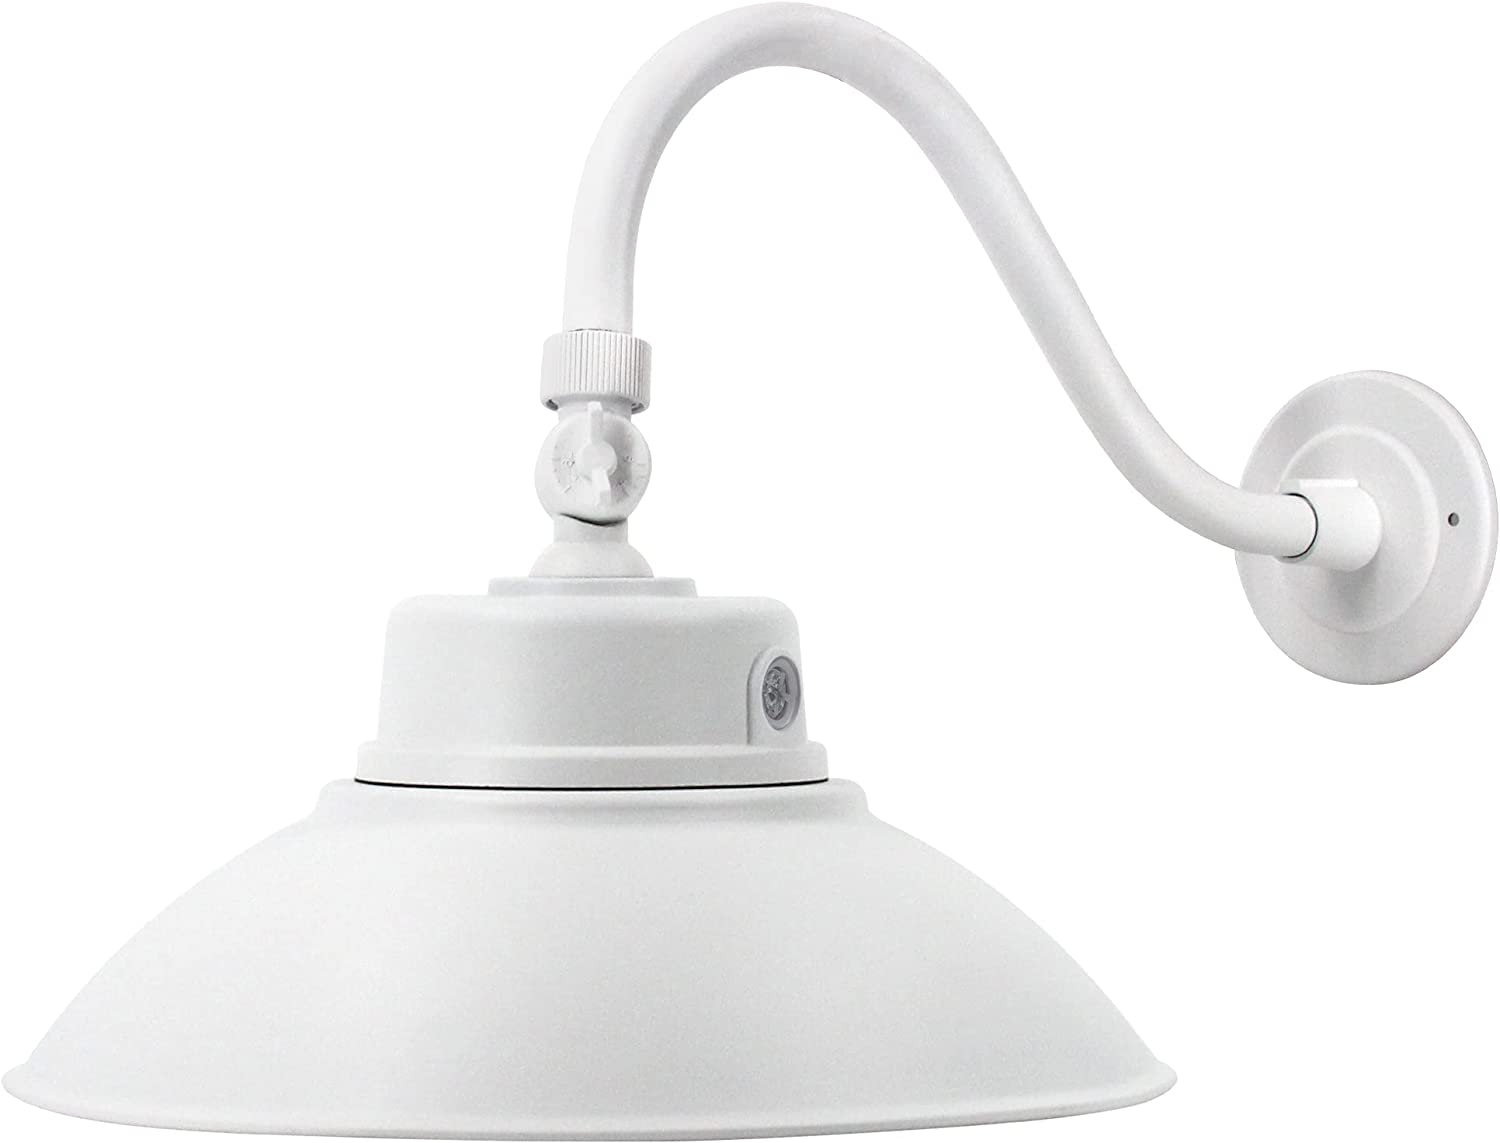 14in. White LED Outlet SALE Gooseneck Barn Light Fix Daylight Be super welcome 4000lm 42W